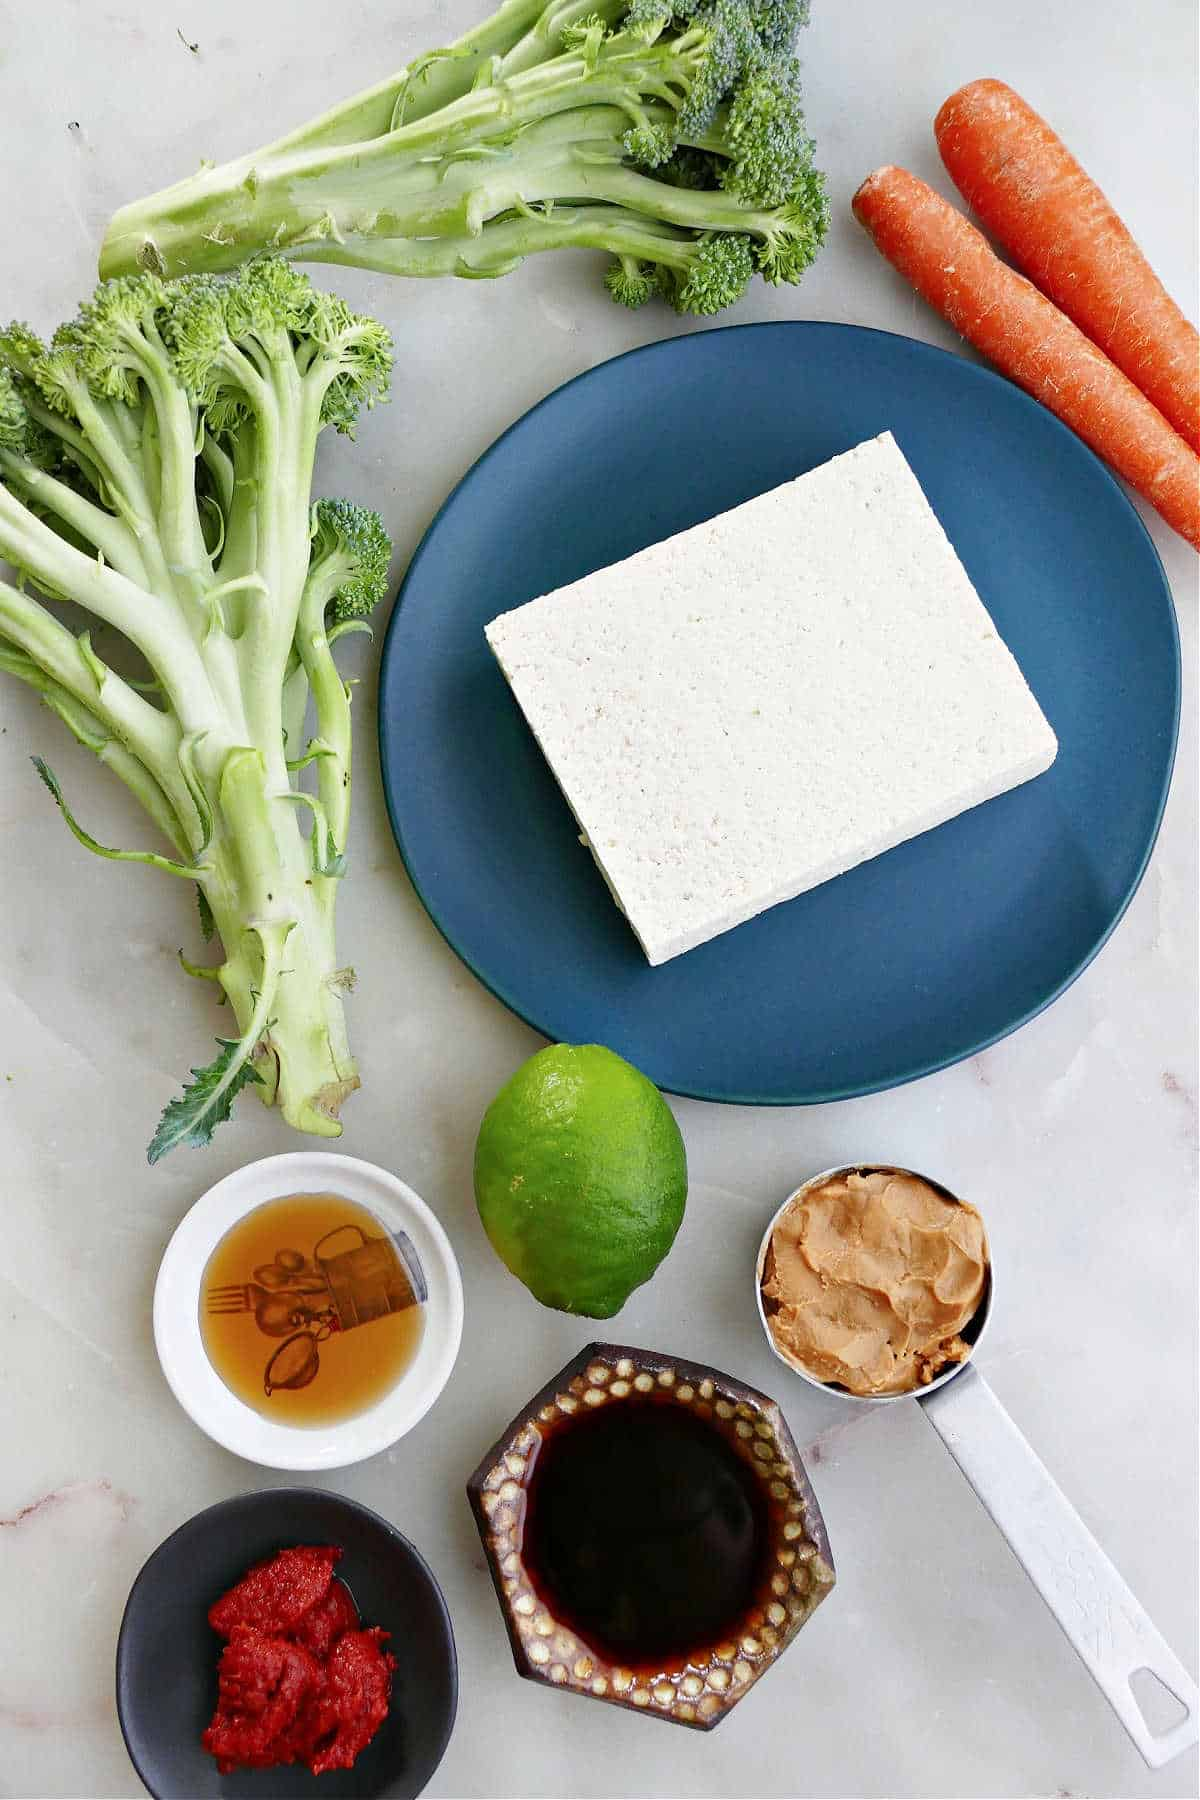 broccoli, tofu, carrots, lime, and peanut sauce ingredients next to each other on a counter